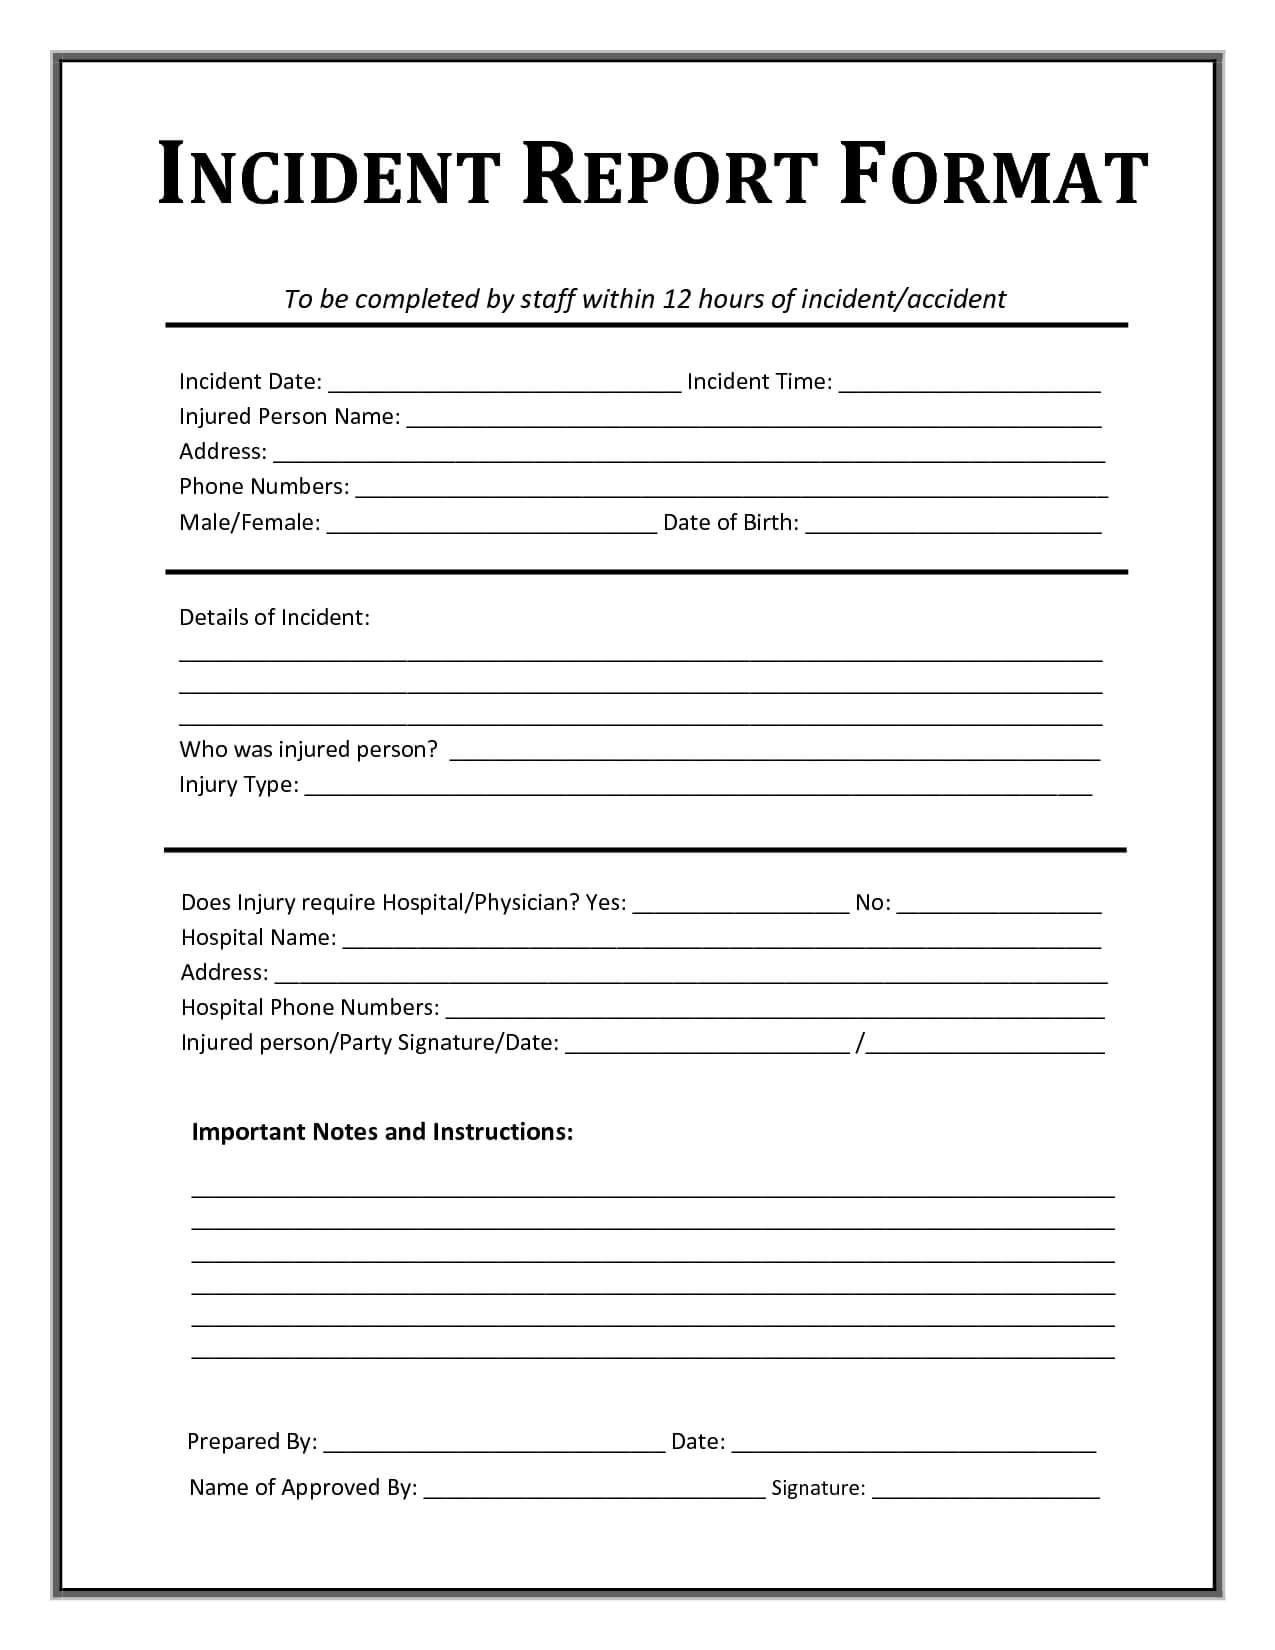 Incident Report Form Template Microsoft Excel | Report throughout Injury Report Form Template